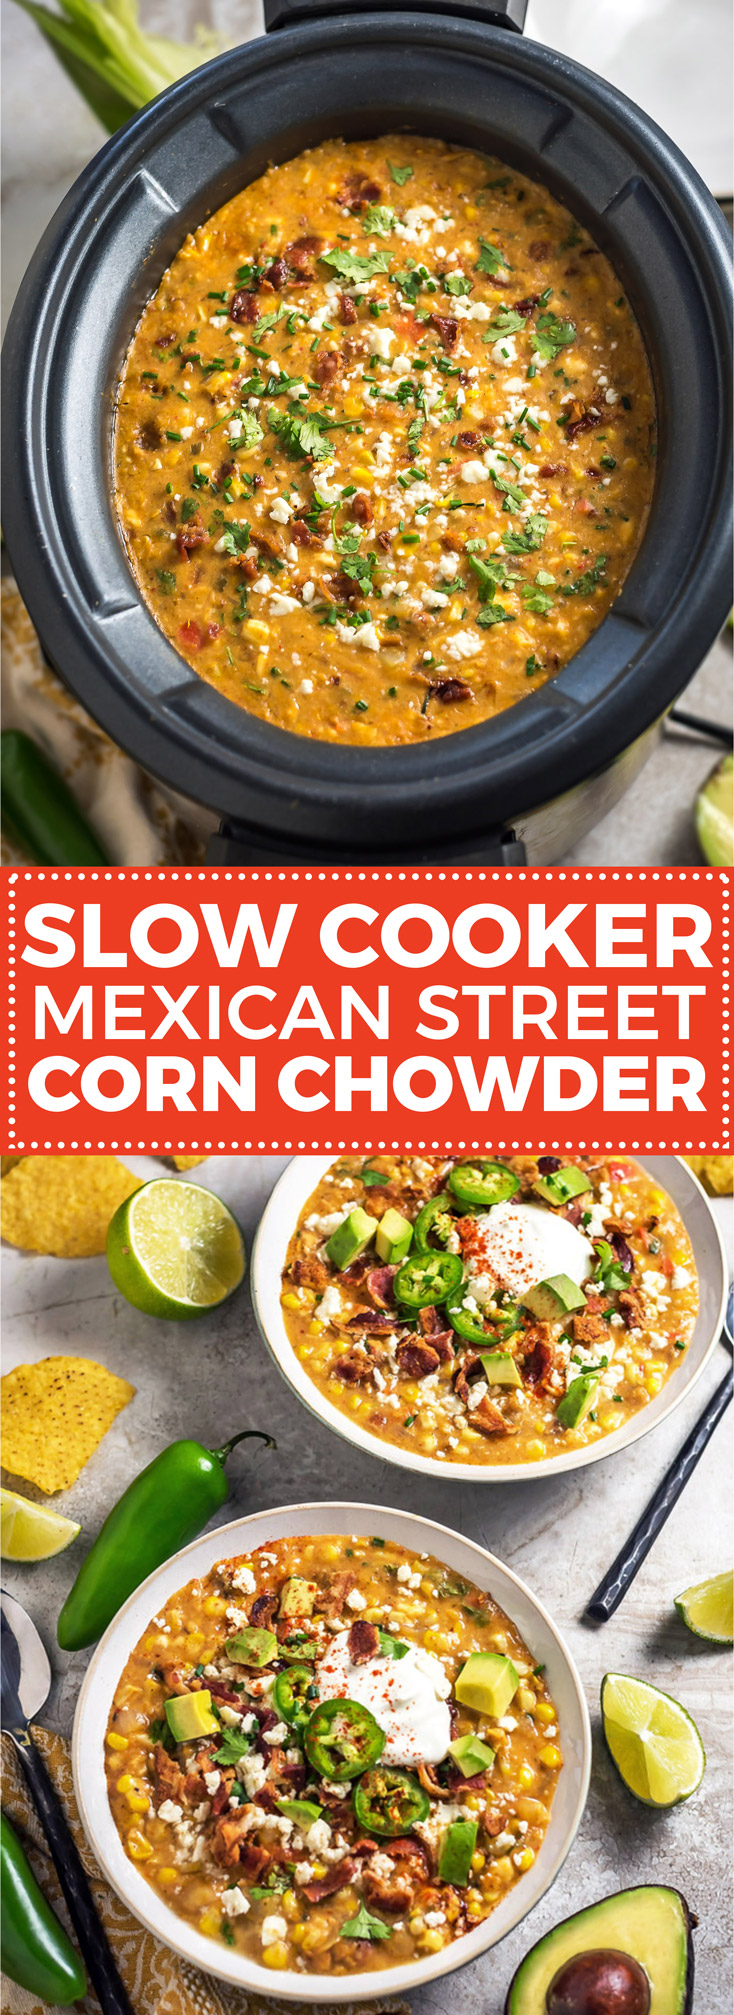 Slow Cooker Mexican Street Corn Chowder. This soup is loaded up with smoky, tangy, spicy, and salty flavors-- you're never going to want regular ol' corn chowder again. | hostthetoast.com